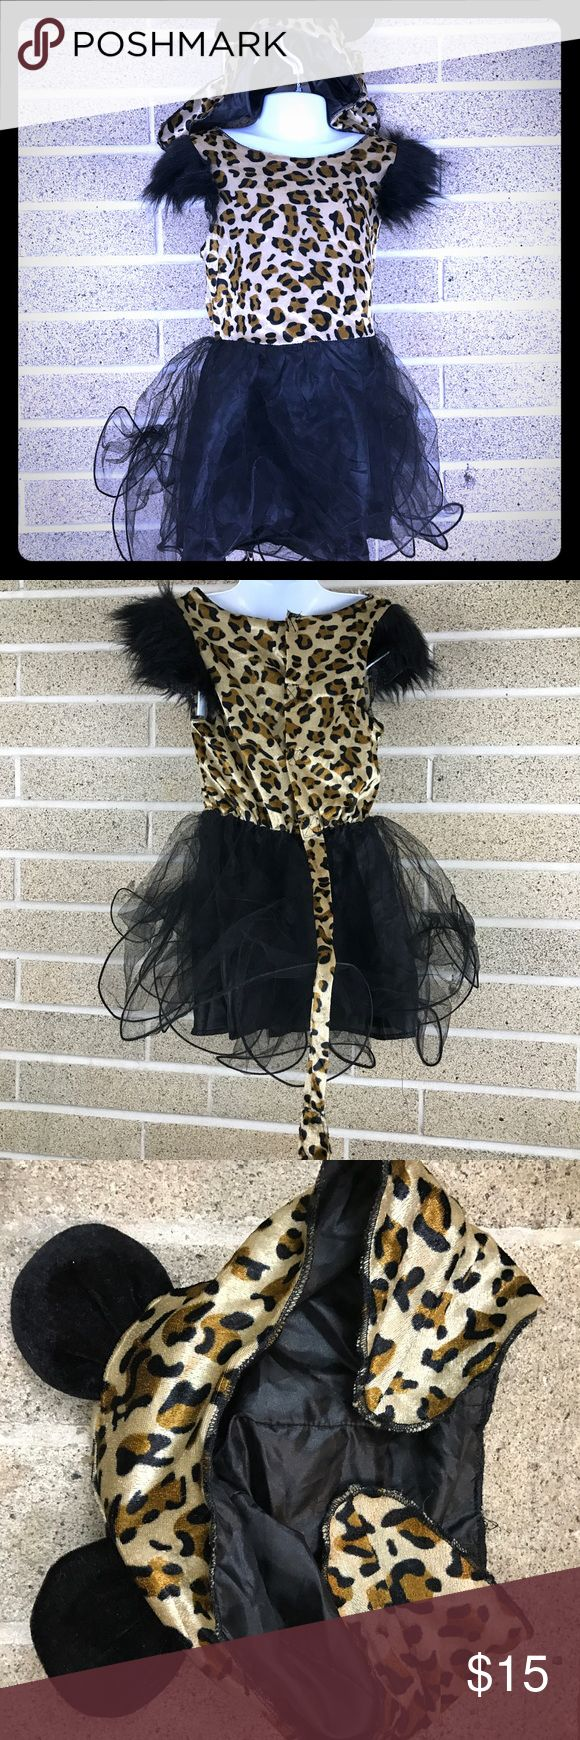 Kids leopard cheetah costume Super cute play dress up costume. No size tag but it looks like a 5 or 6. Comes with hat with ears. Costumes